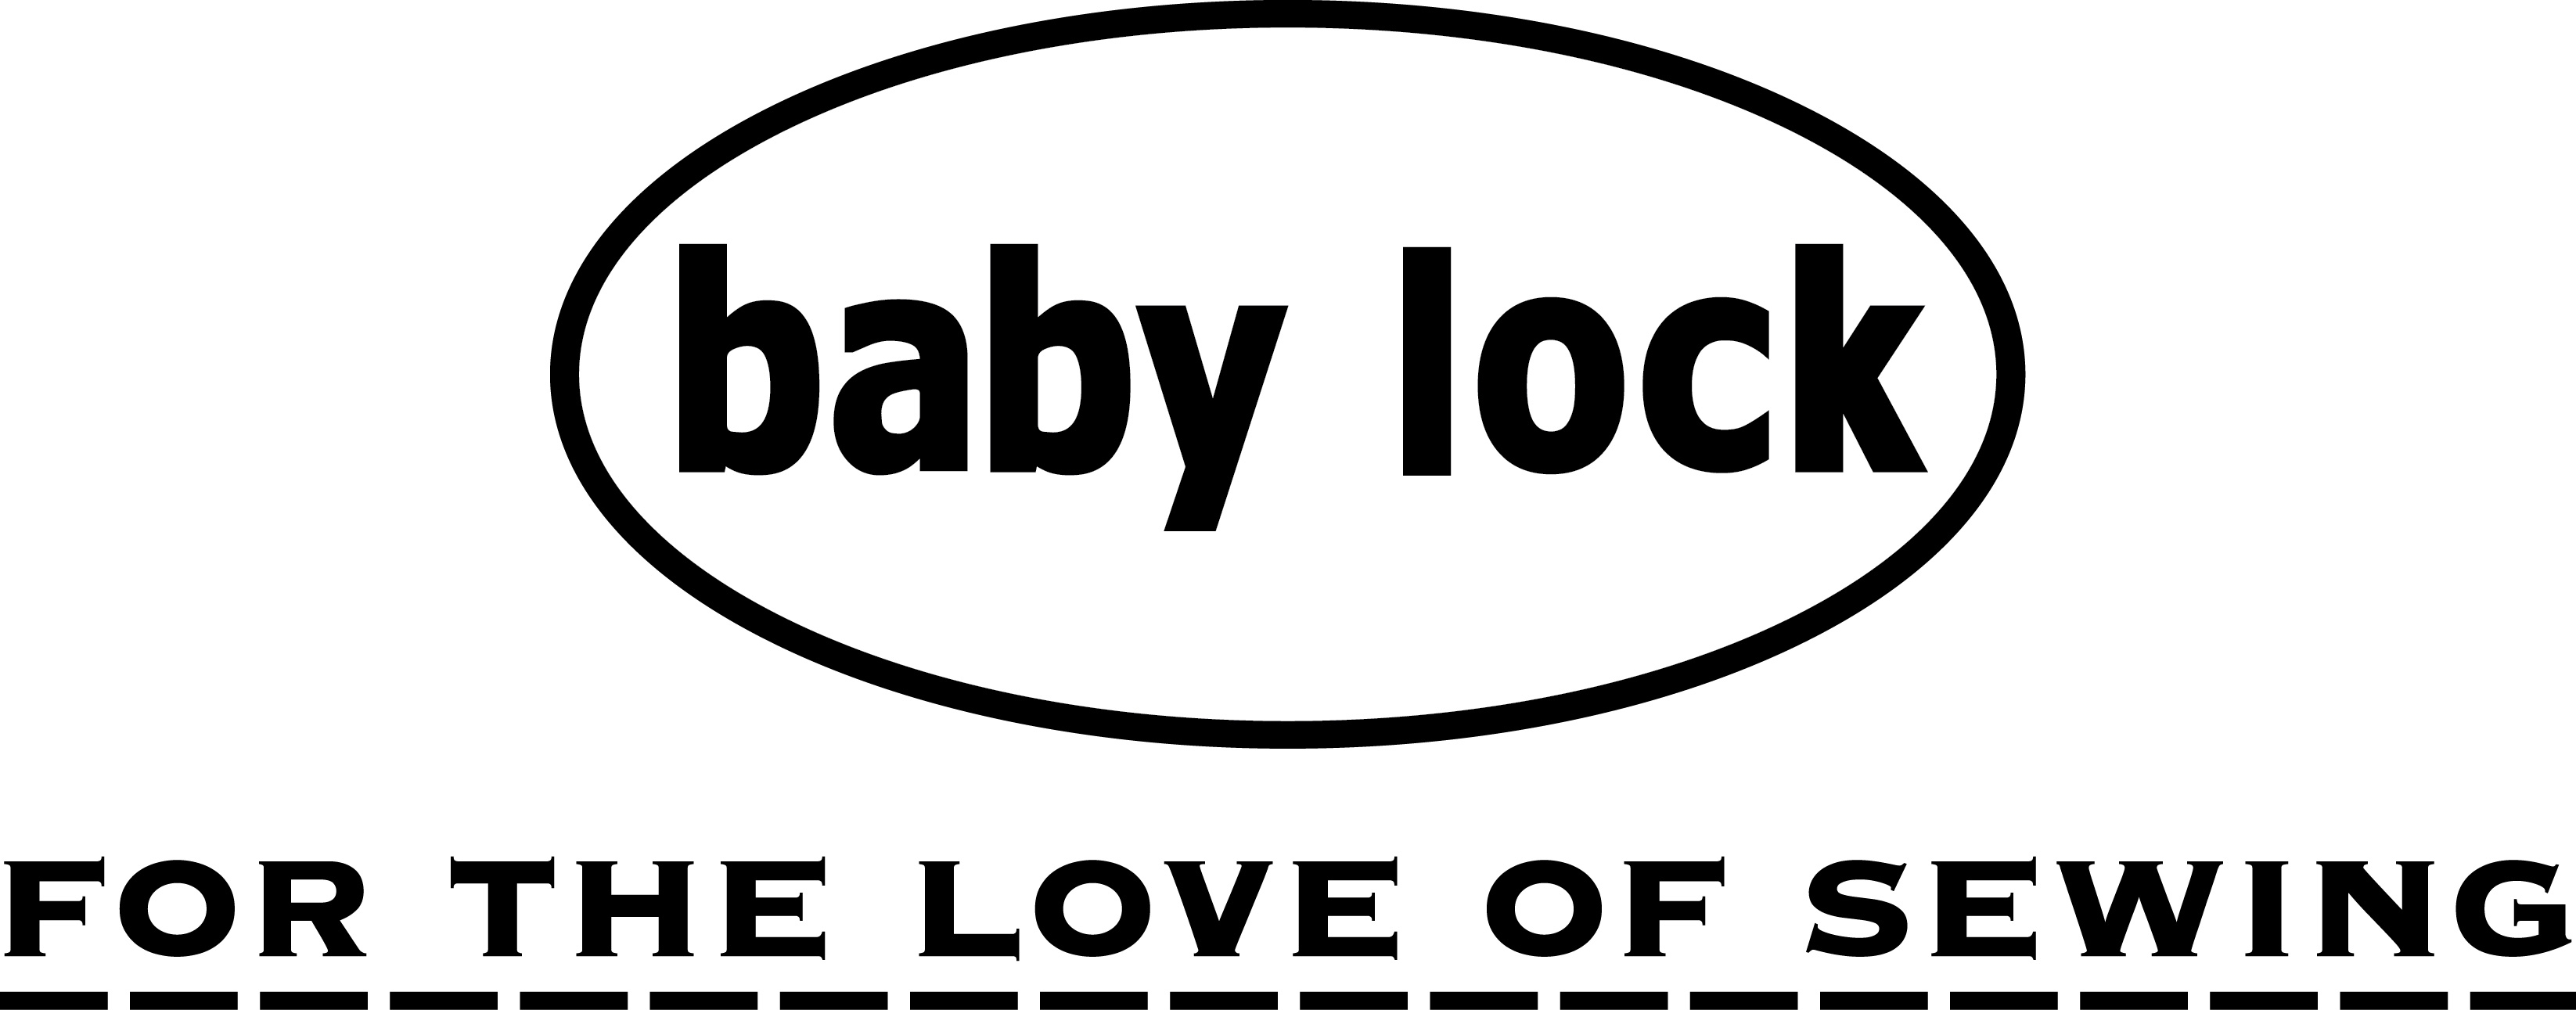 Baby Lock Collection - Baby Lock - Sewing Machines